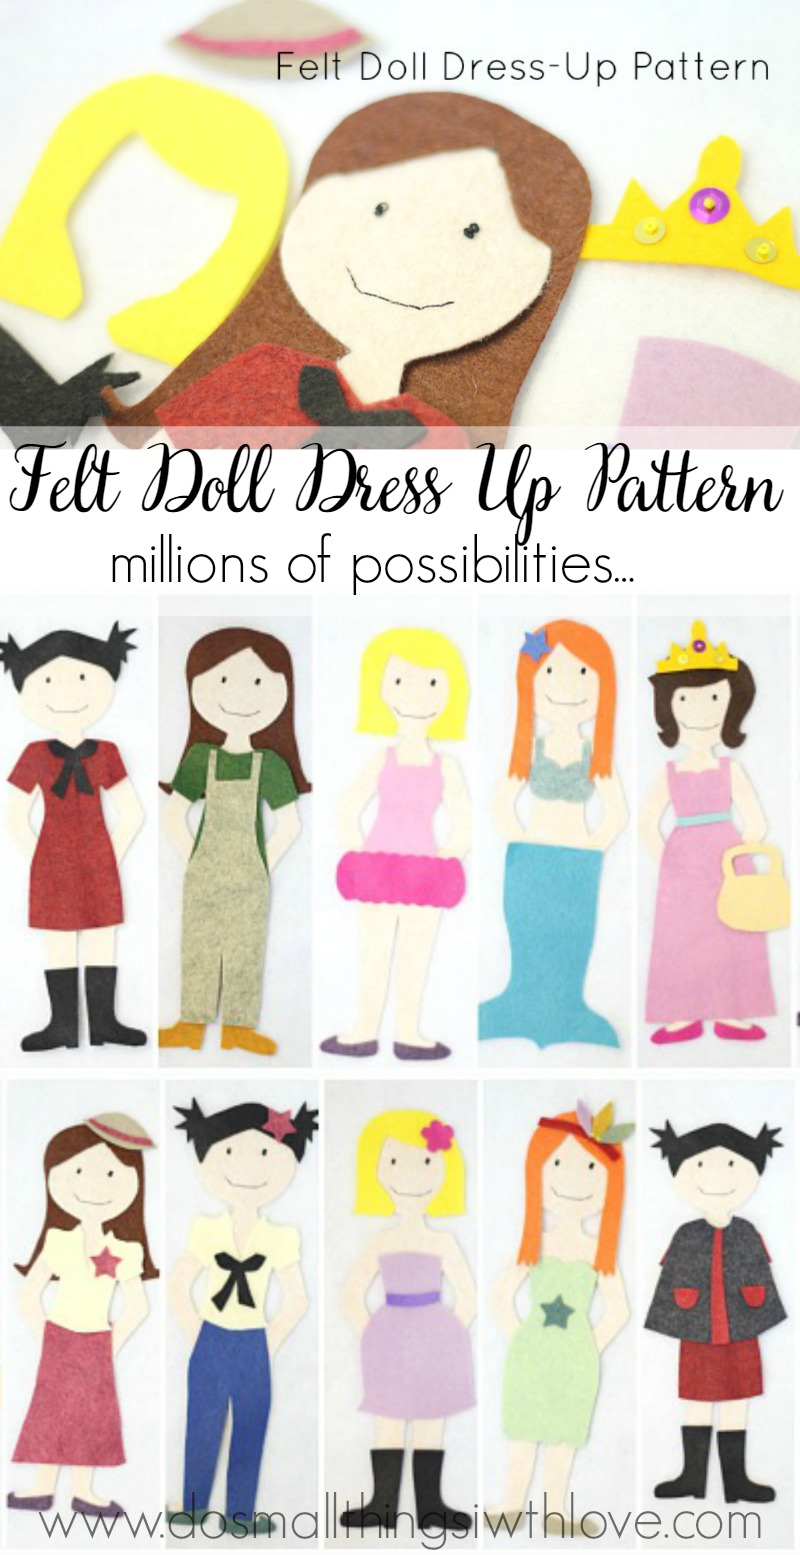 Felt doll dress up pattern do small things with great love felt doll dress up pattern available for only 1 maxwellsz